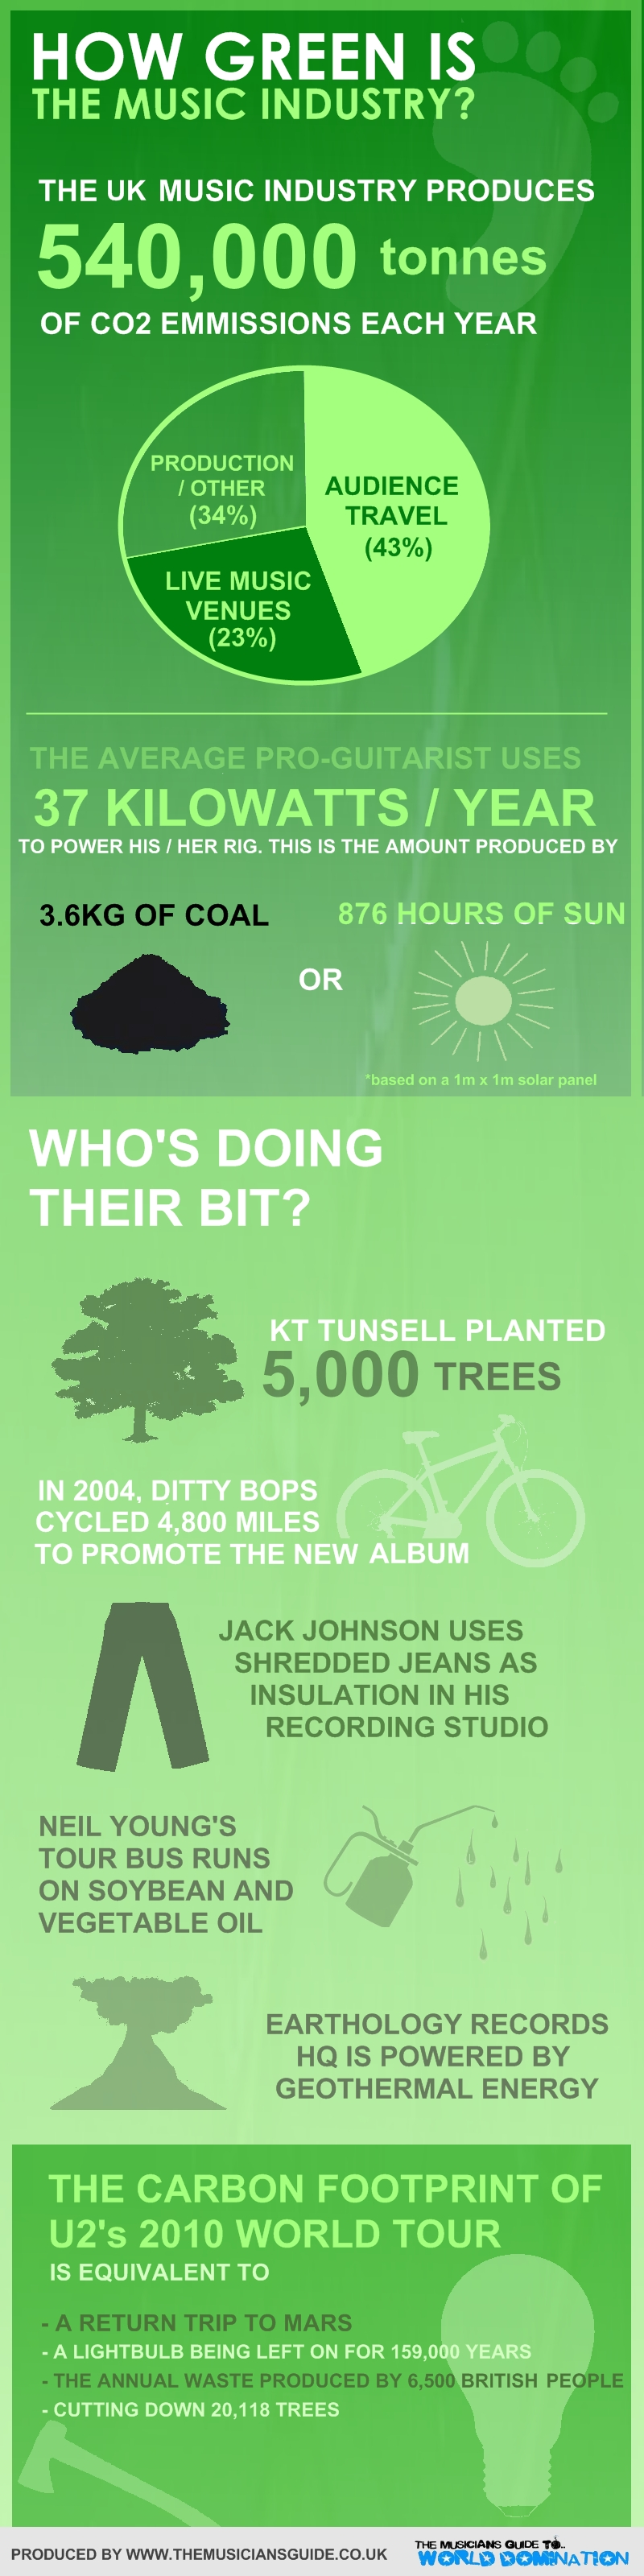 how-green-is-music-industry